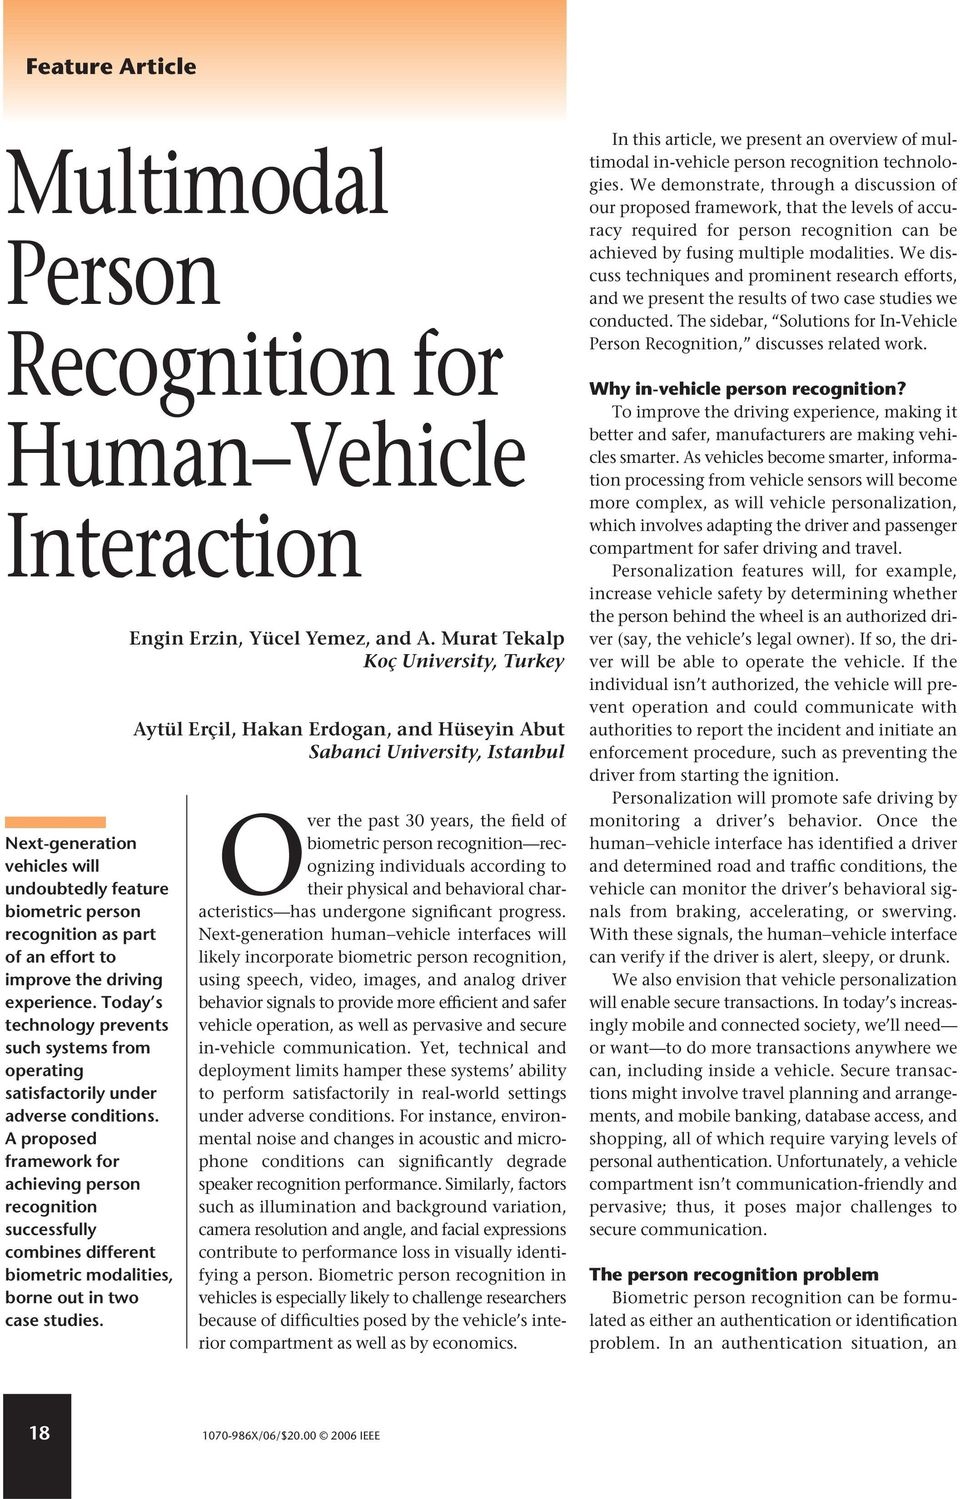 A proposed framework for achieving person recognition successfully combines different biometric modalities, borne out in two case studies. Engin Erzin, Yücel Yemez, and A.